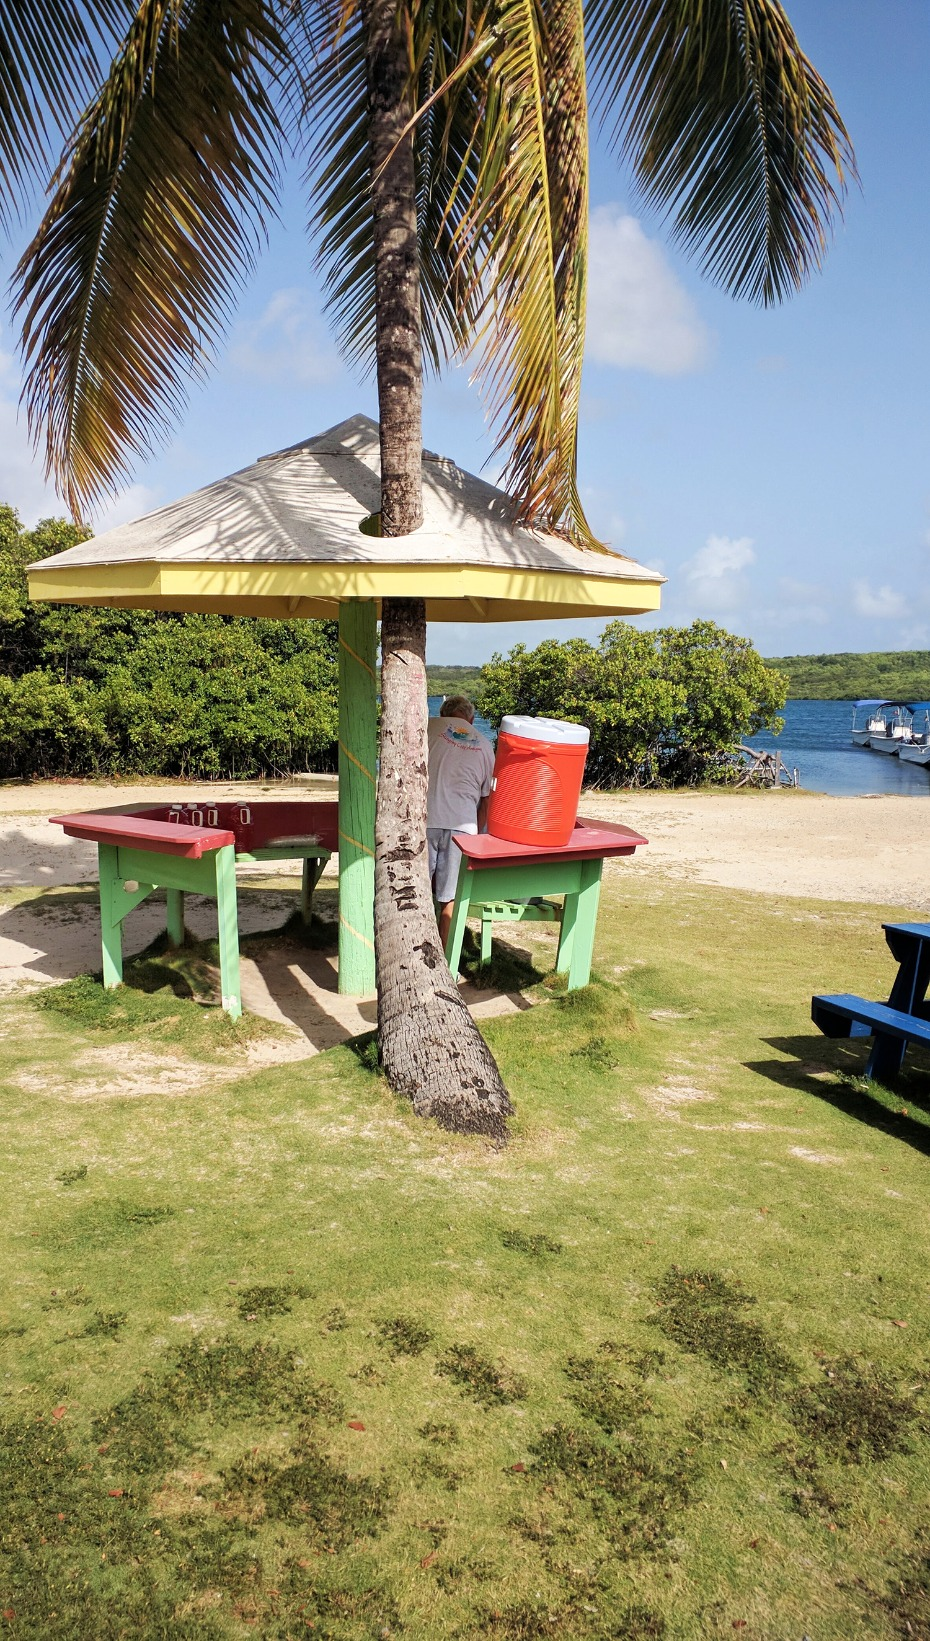 Rum punch stand in Antigua